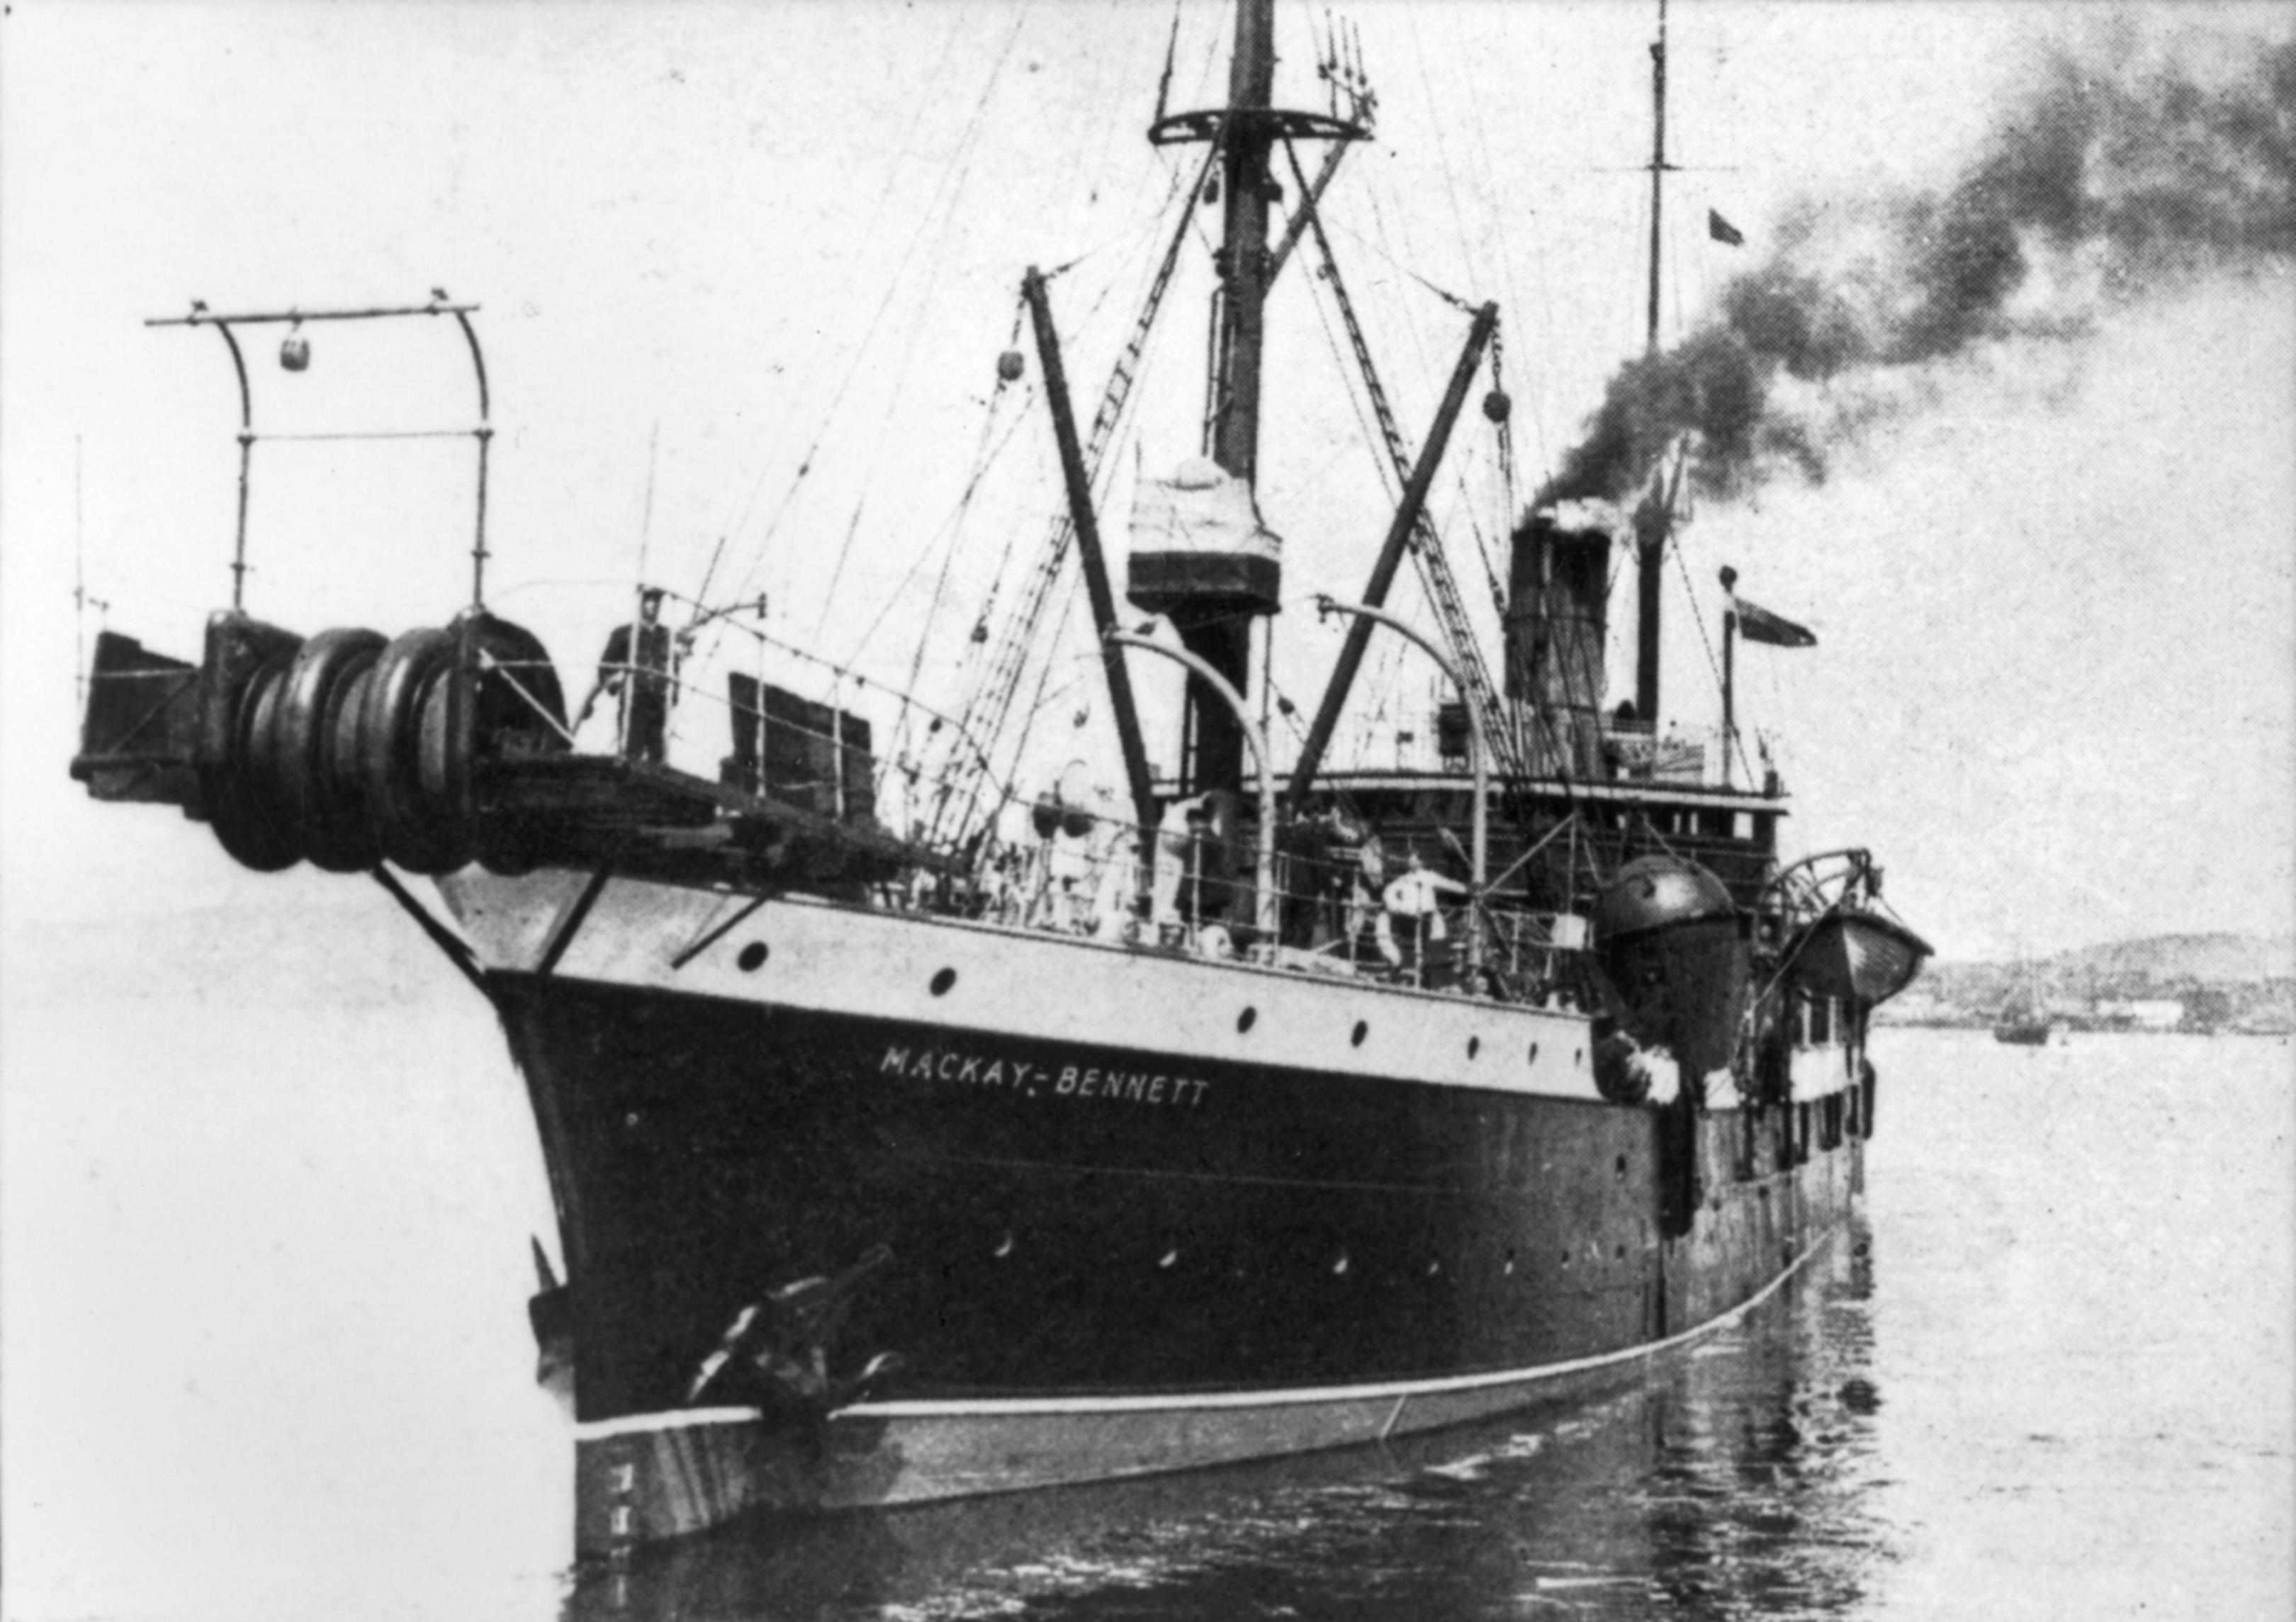 The tragic true story of the grisly Titanic recovery operation ...